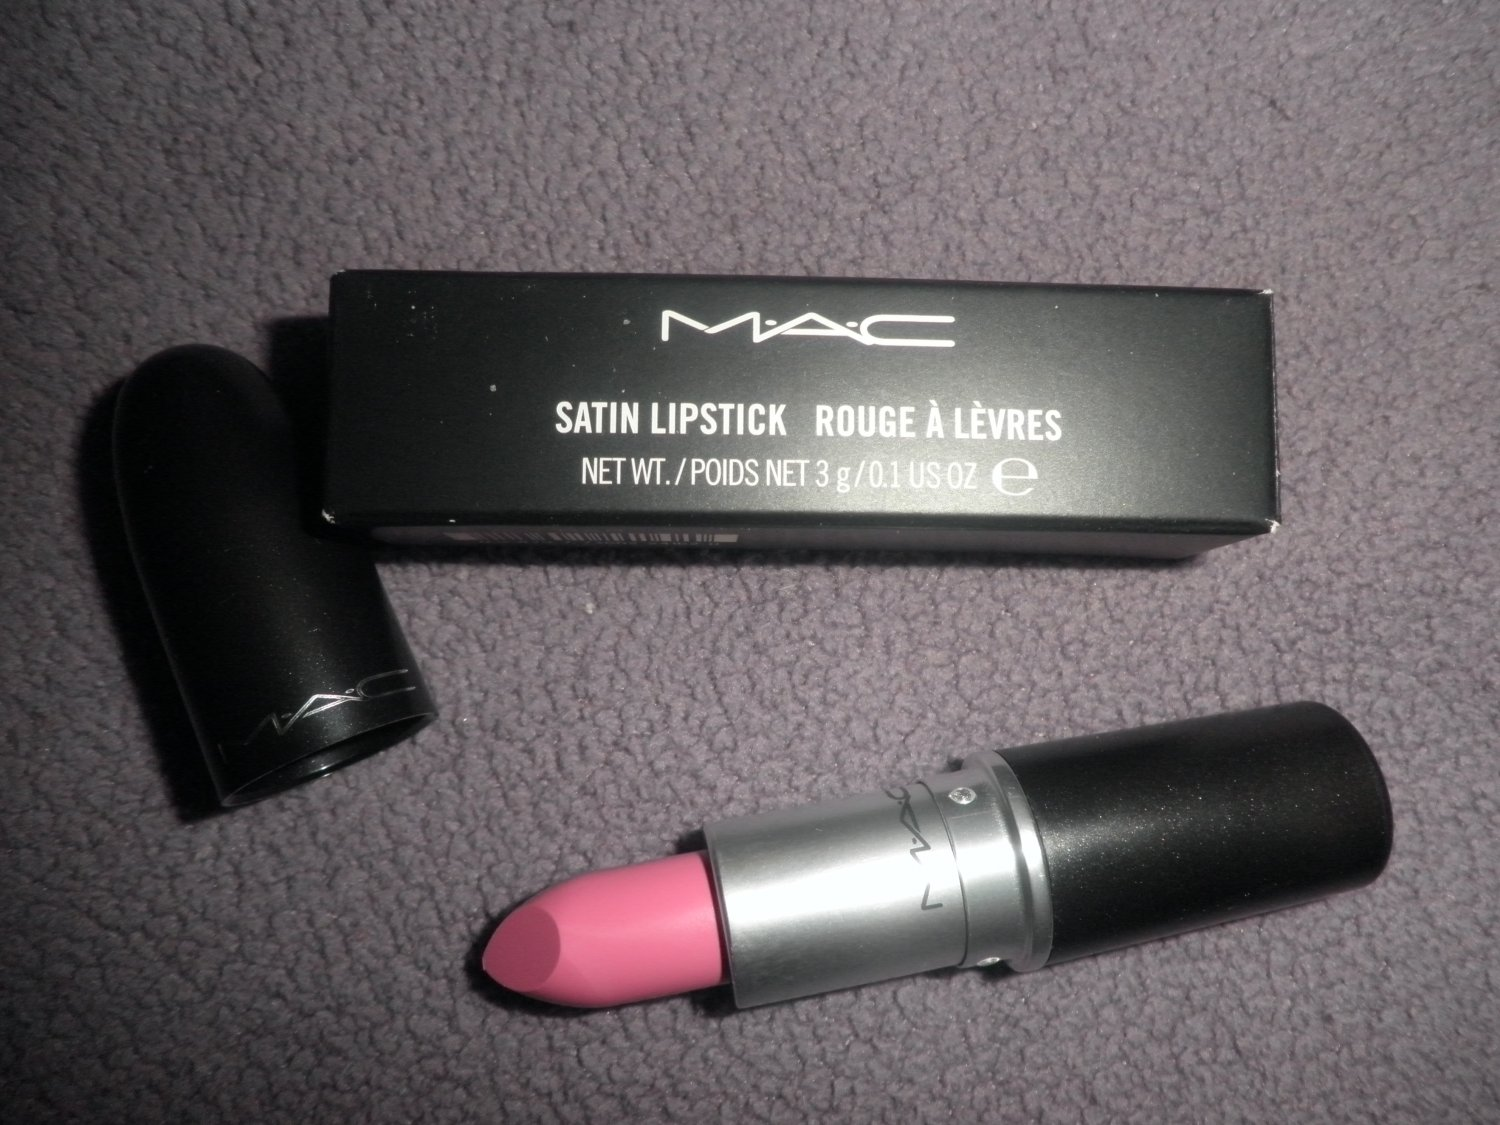 M.A.C Lipstick in Pink Friday